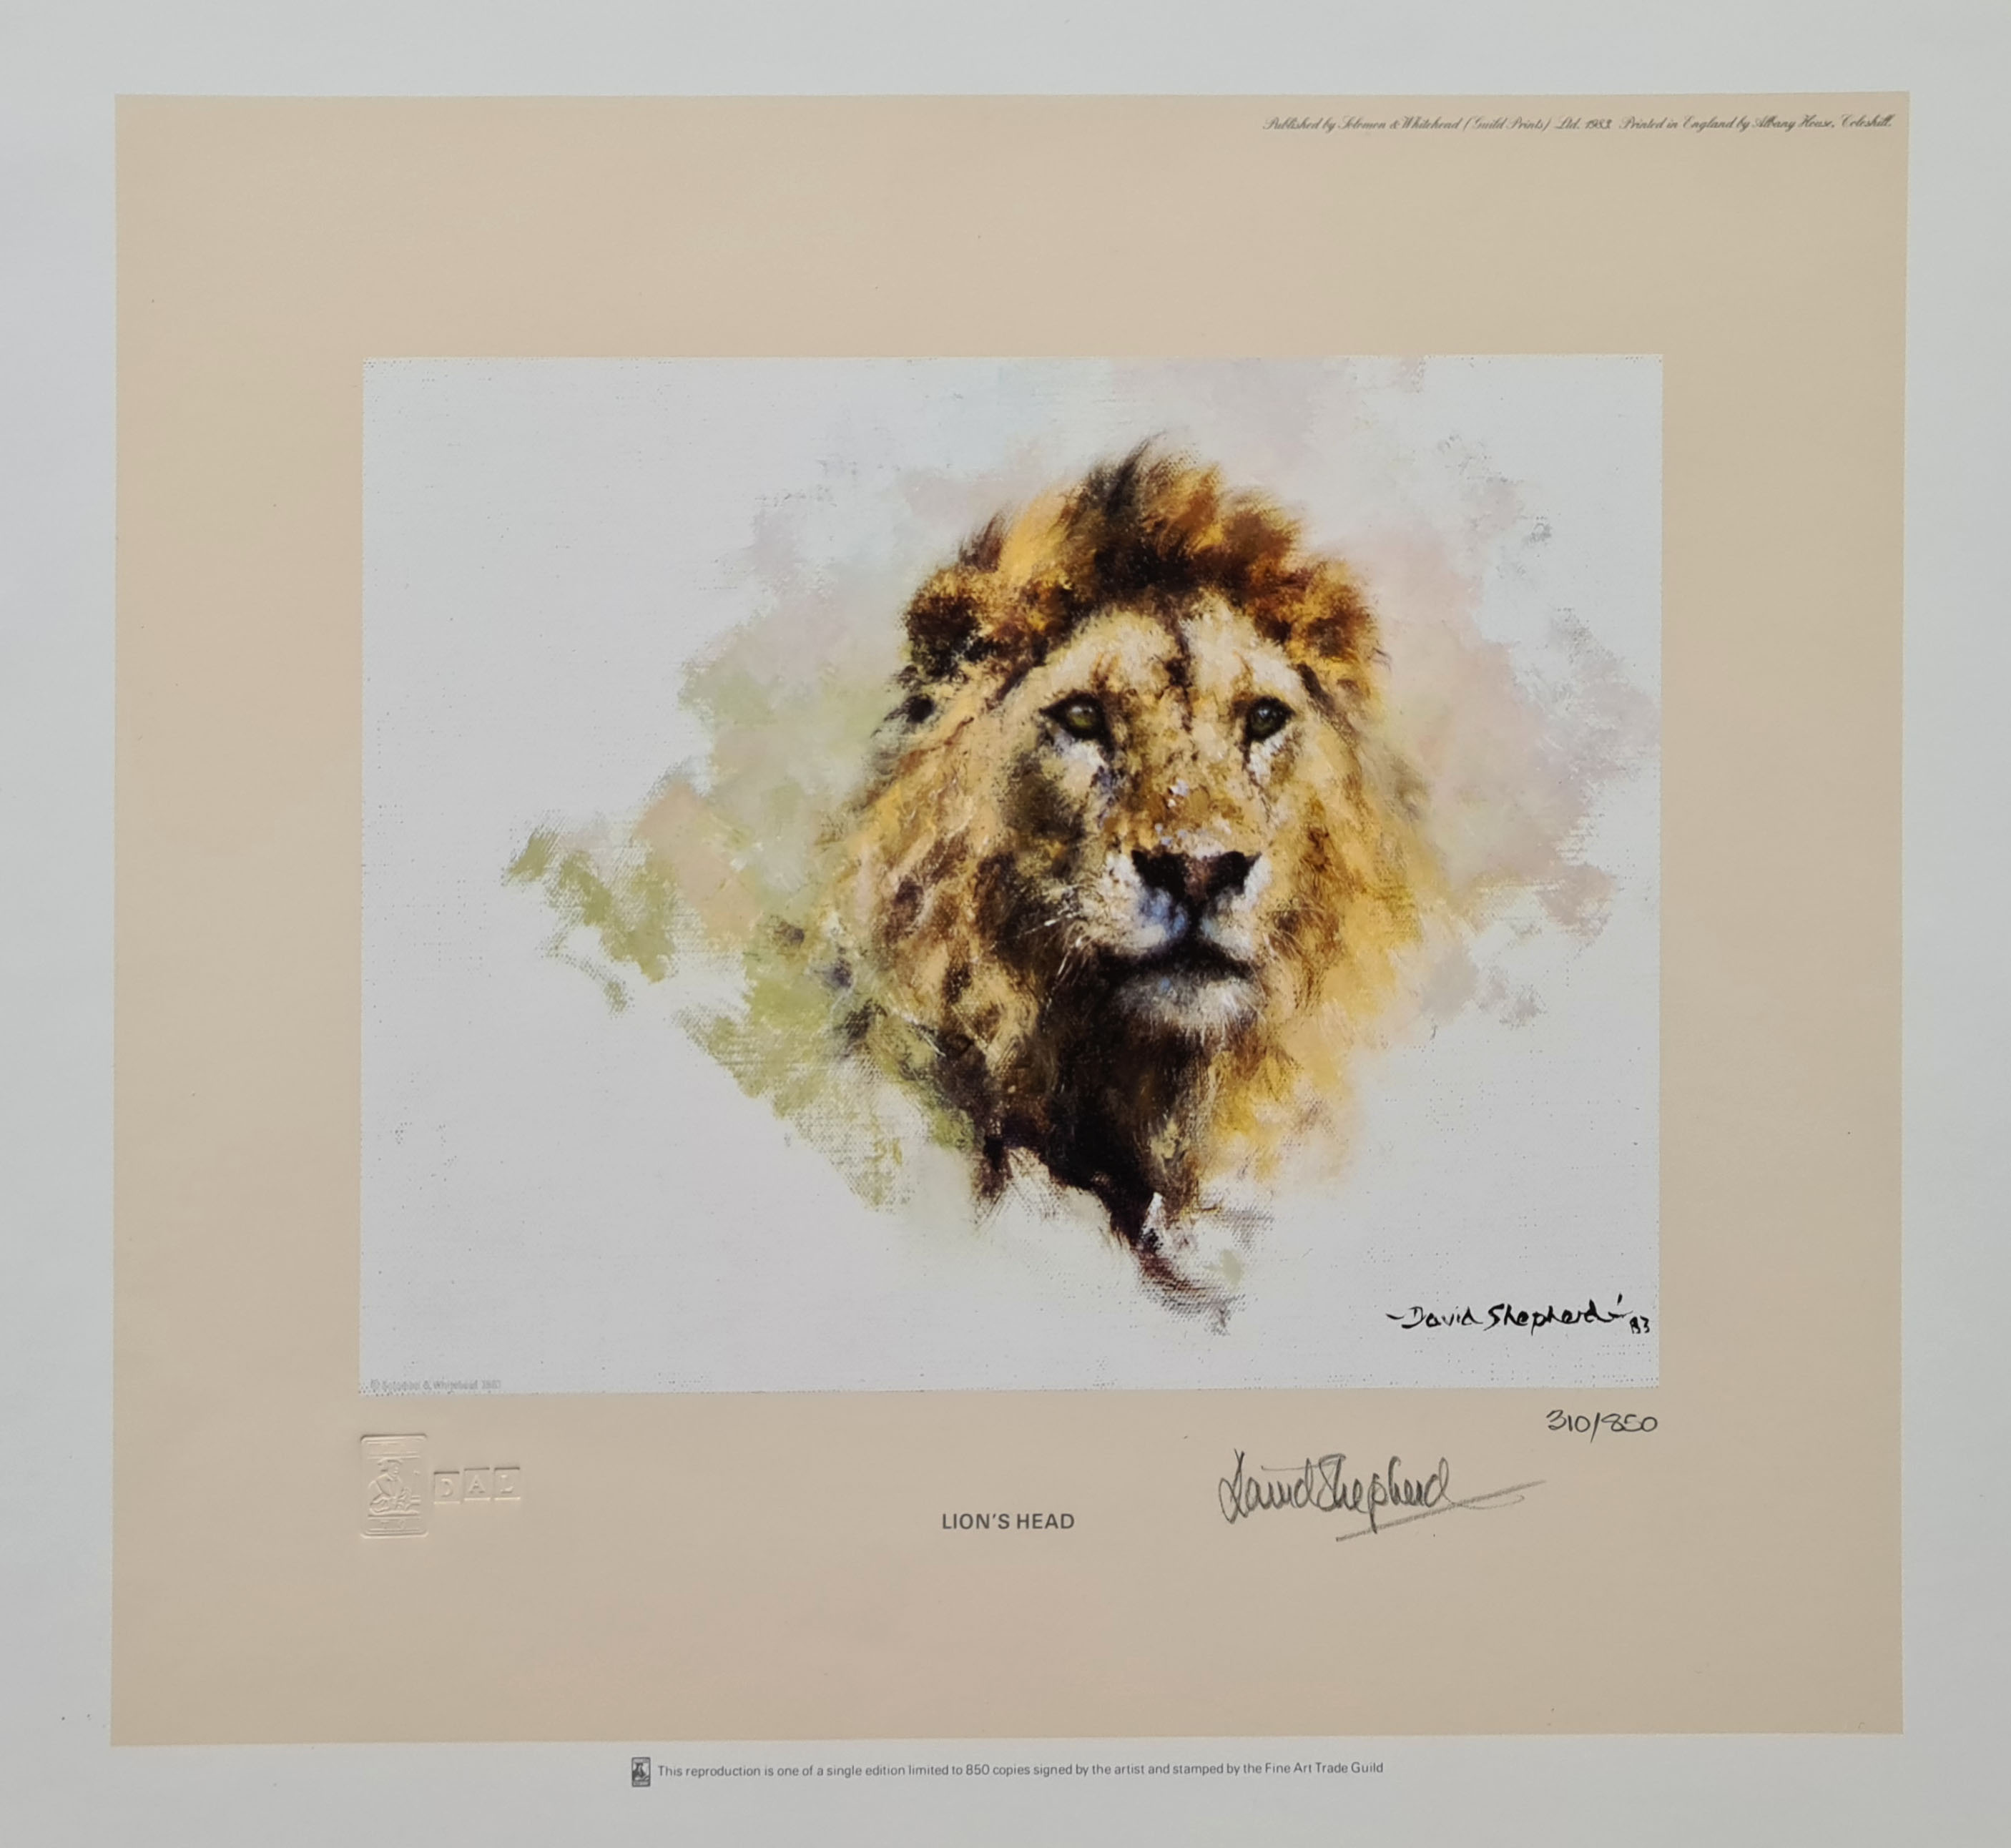 david shepherd, Lion's Head, signed, limited edition